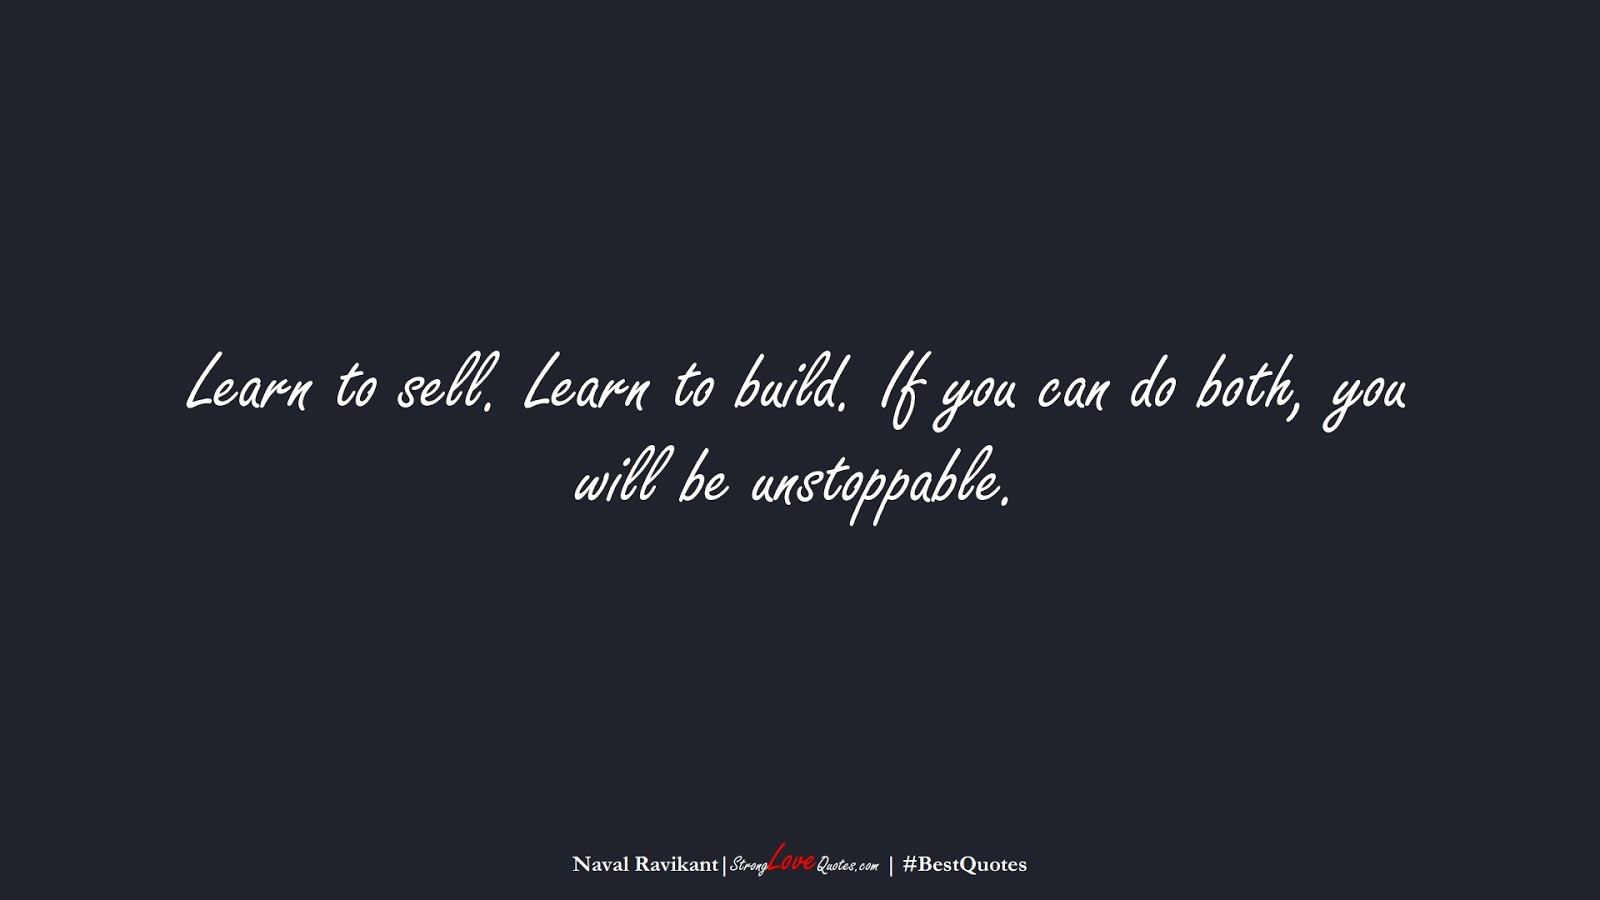 Learn to sell. Learn to build. If you can do both, you will be unstoppable. (Naval Ravikant);  #BestQuotes